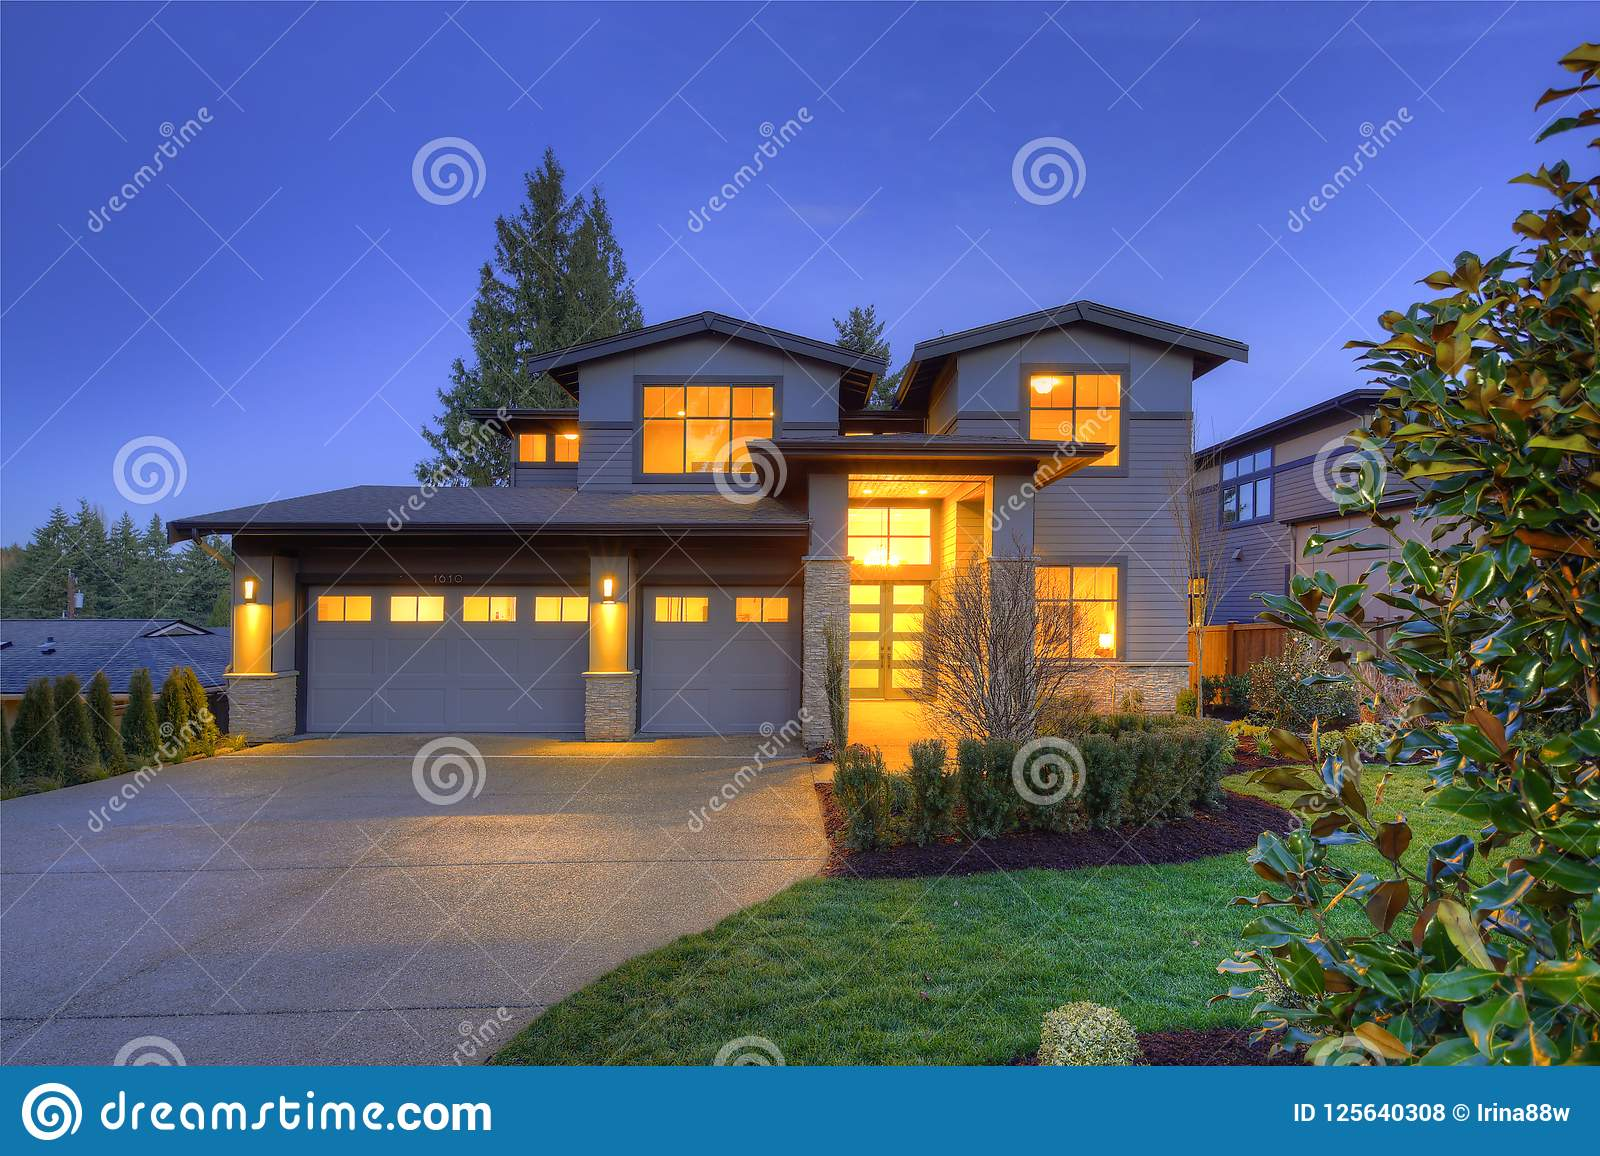 Grey Luxury Modern Two Story Tall House Exterior With Stone Columns Stock Photo Image Of Garage Large 125640308